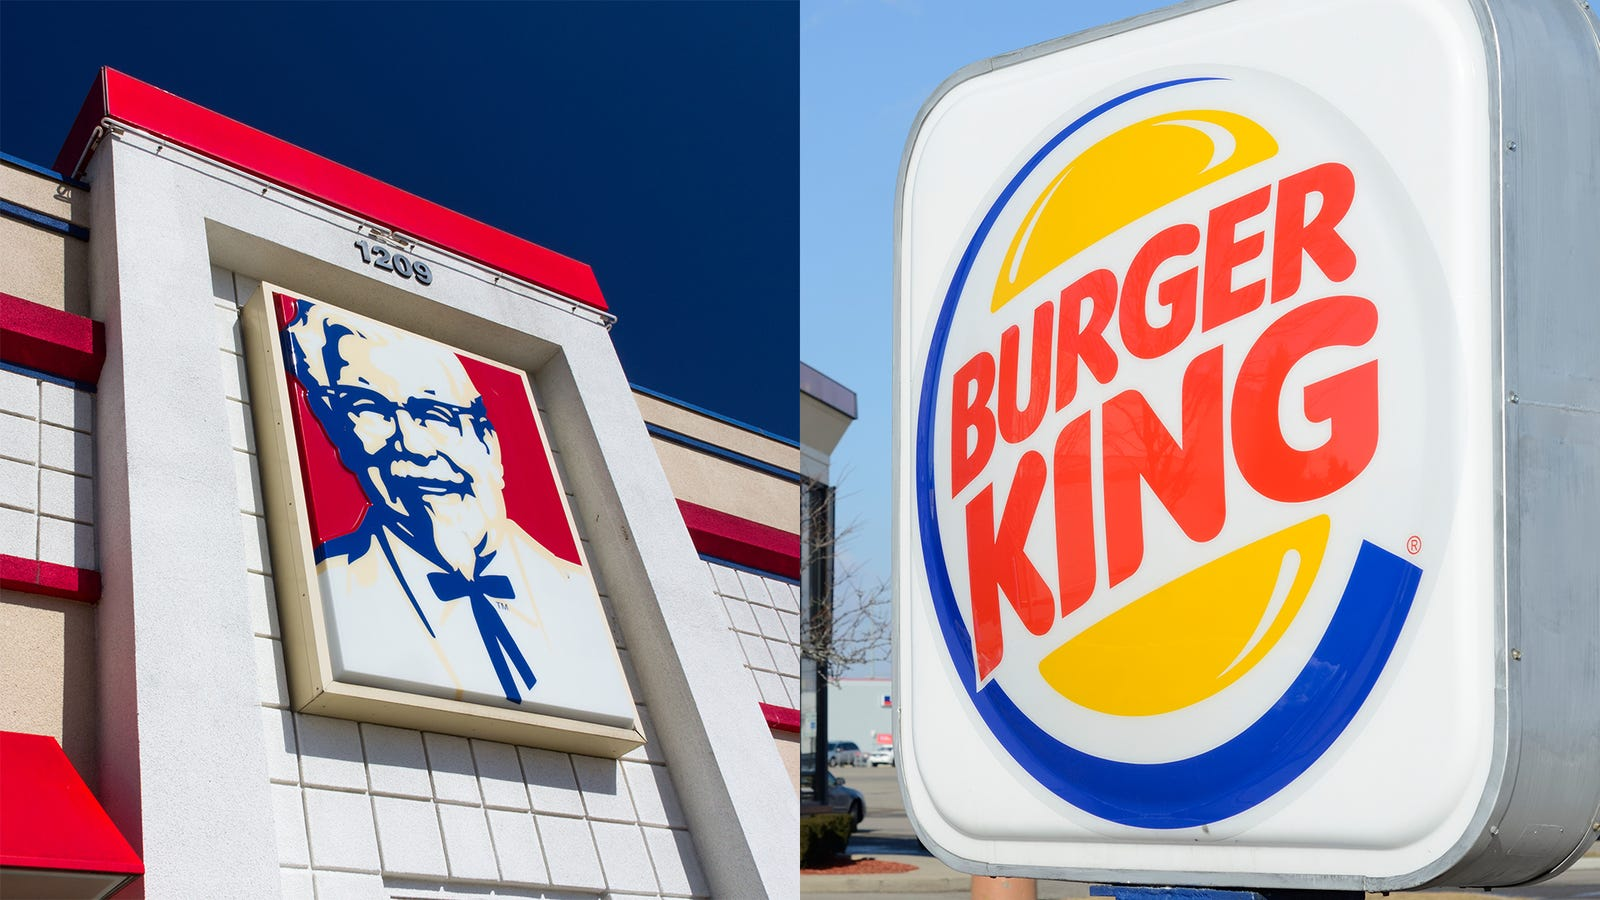 Burger King announces new grilled chicken sandwich with misguided attack on KFC